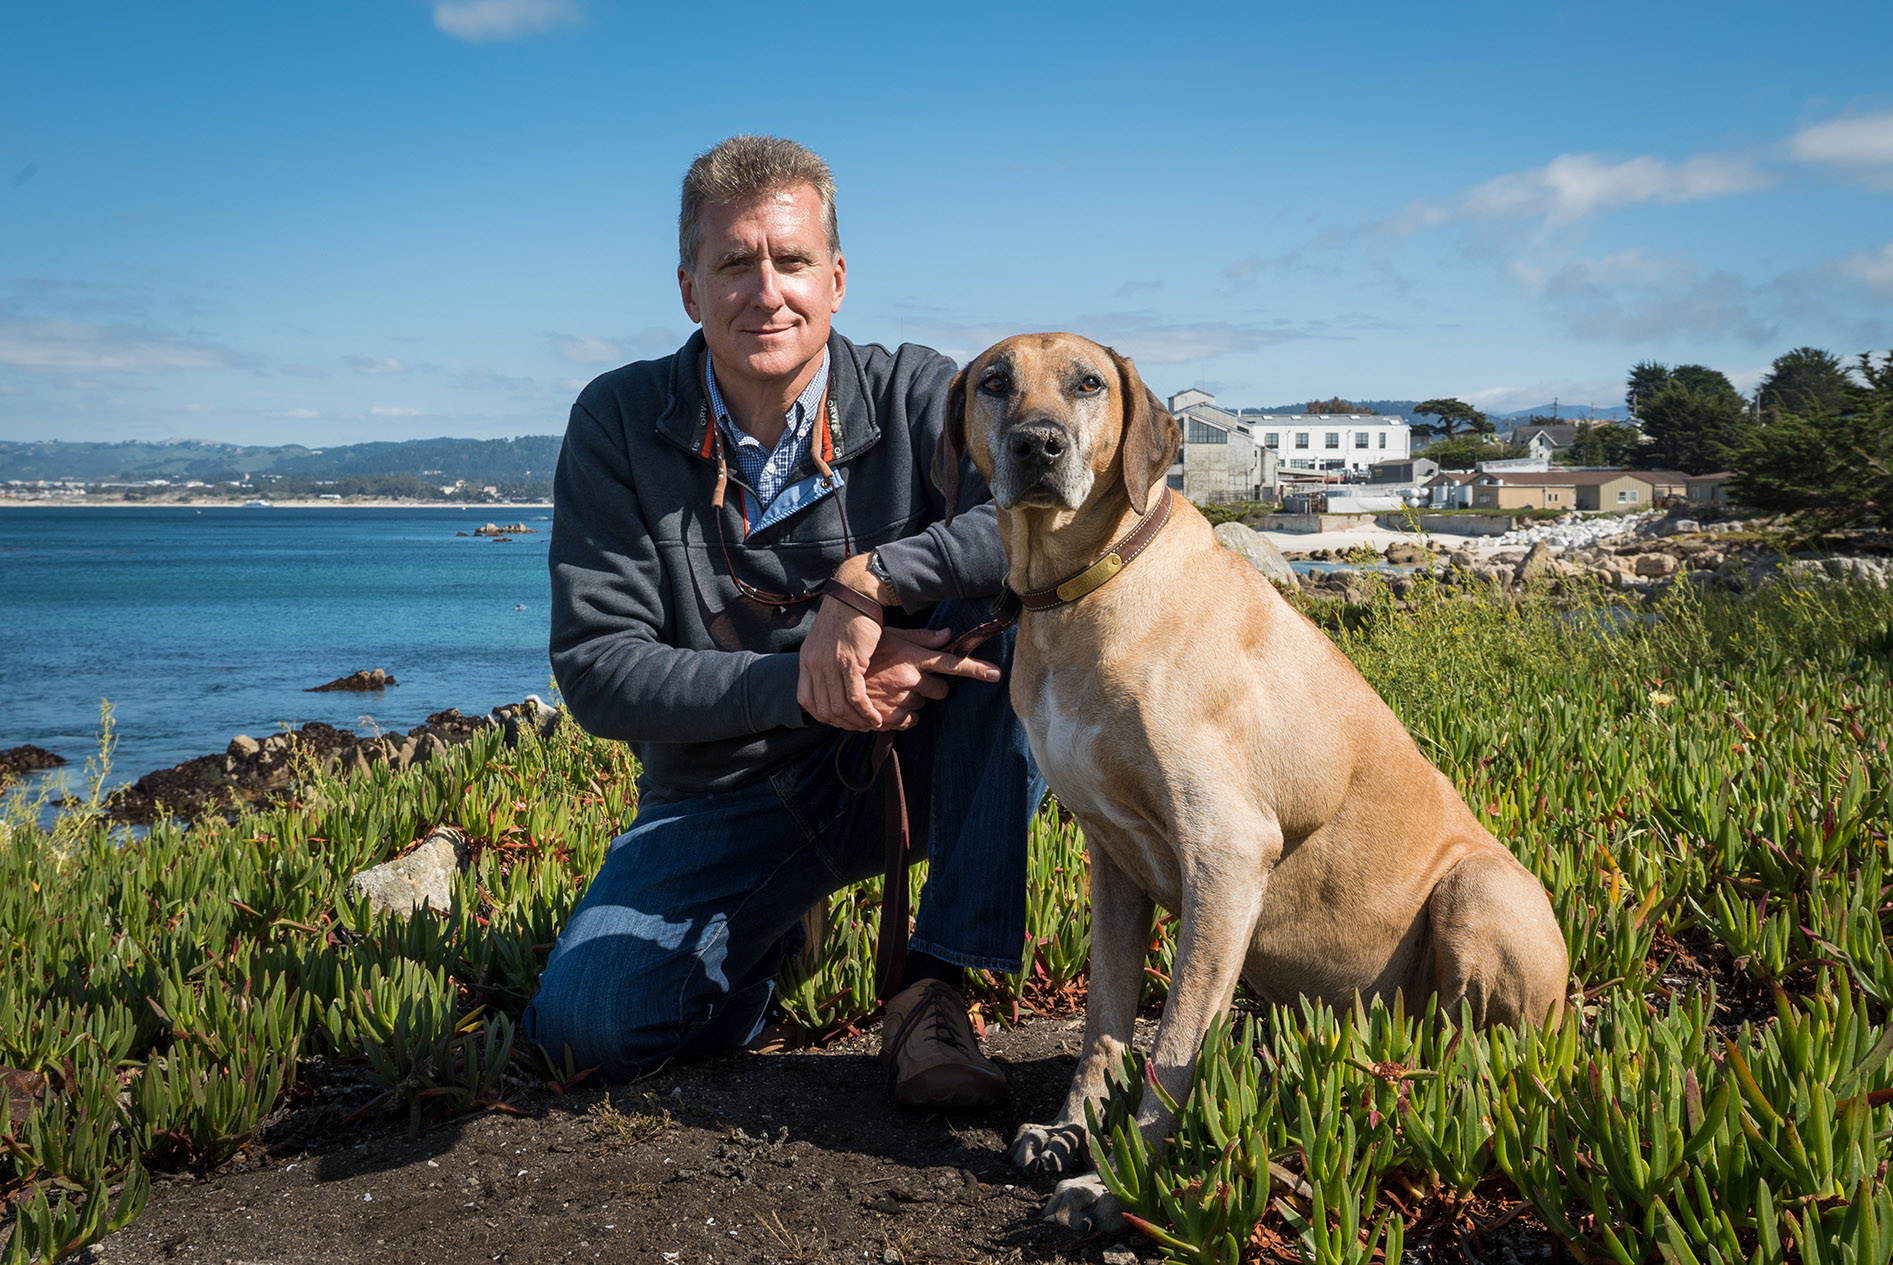 Mike and his ridgeback. Behind Mike is the marine sanctuary and Monterey Bay Aquarium where he worked as Vice President between 2004-12.